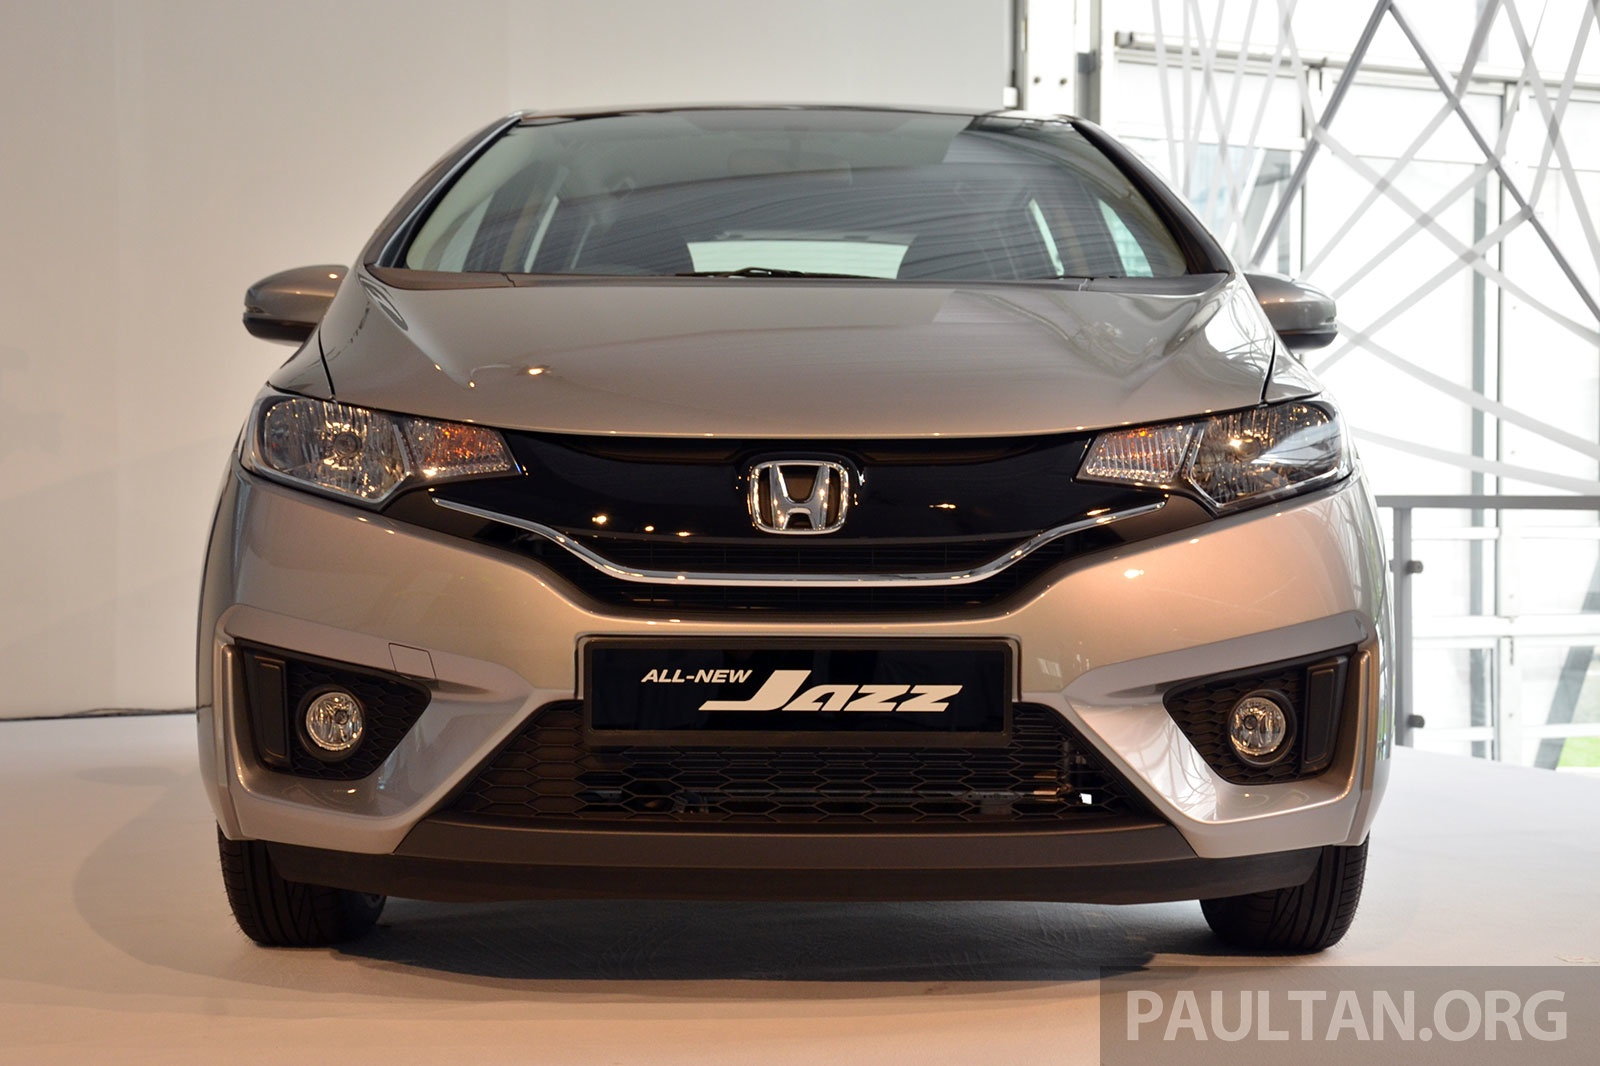 2014 honda jazz launched in malaysia rm73k rm88k. Black Bedroom Furniture Sets. Home Design Ideas